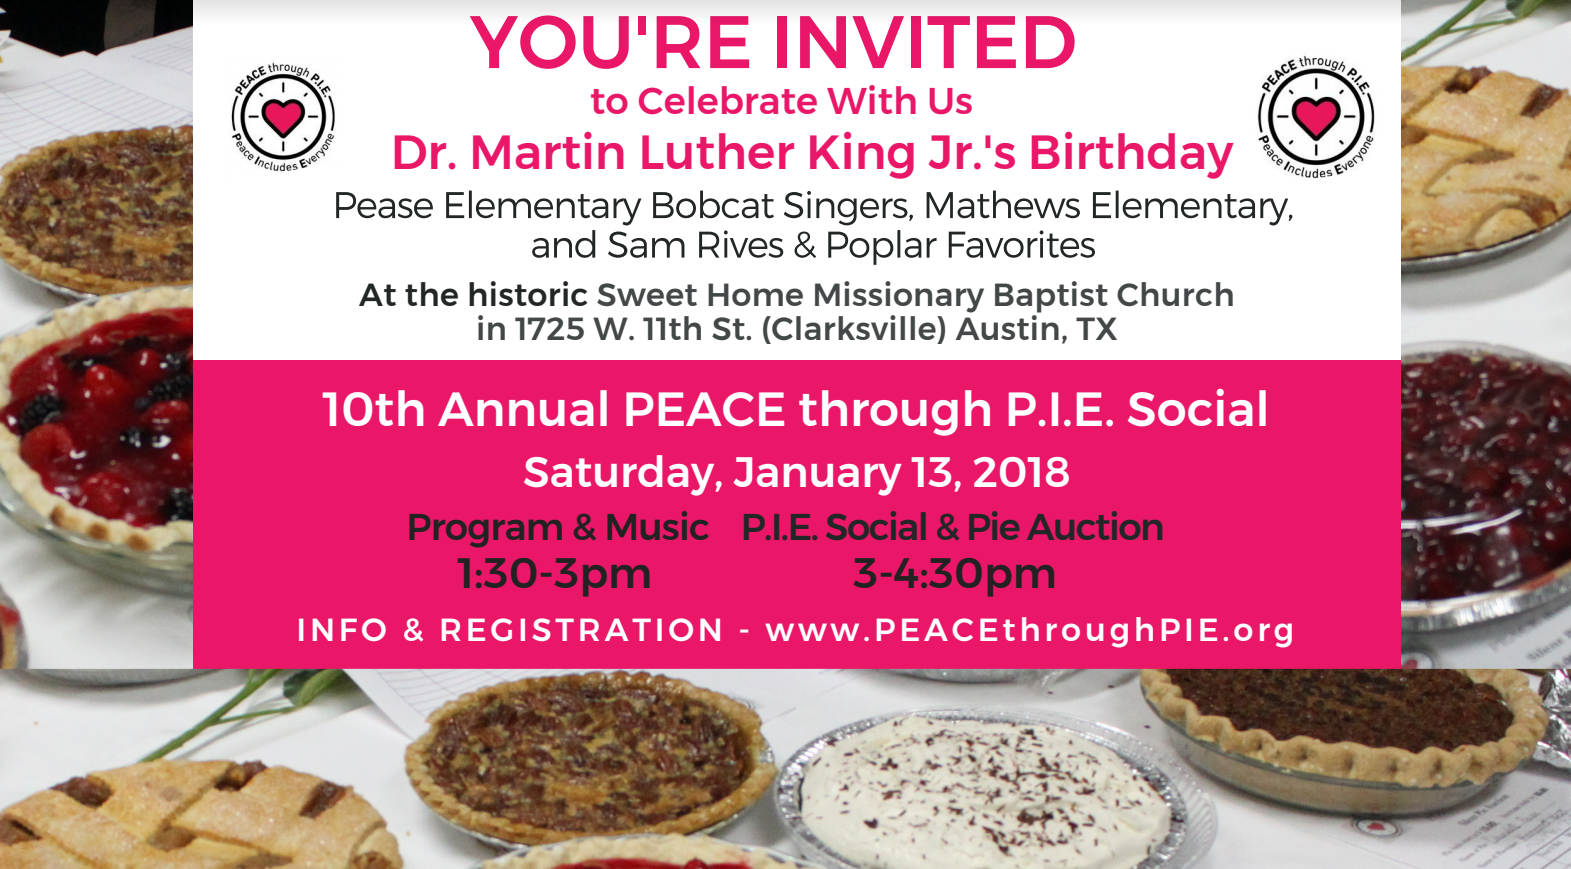 Join us on Saturday, January 13th to celebrate pie, peace, and the great Dr. Martin Luther King Jr.  For more info, visit  www.PEACEthroughPIE.org.